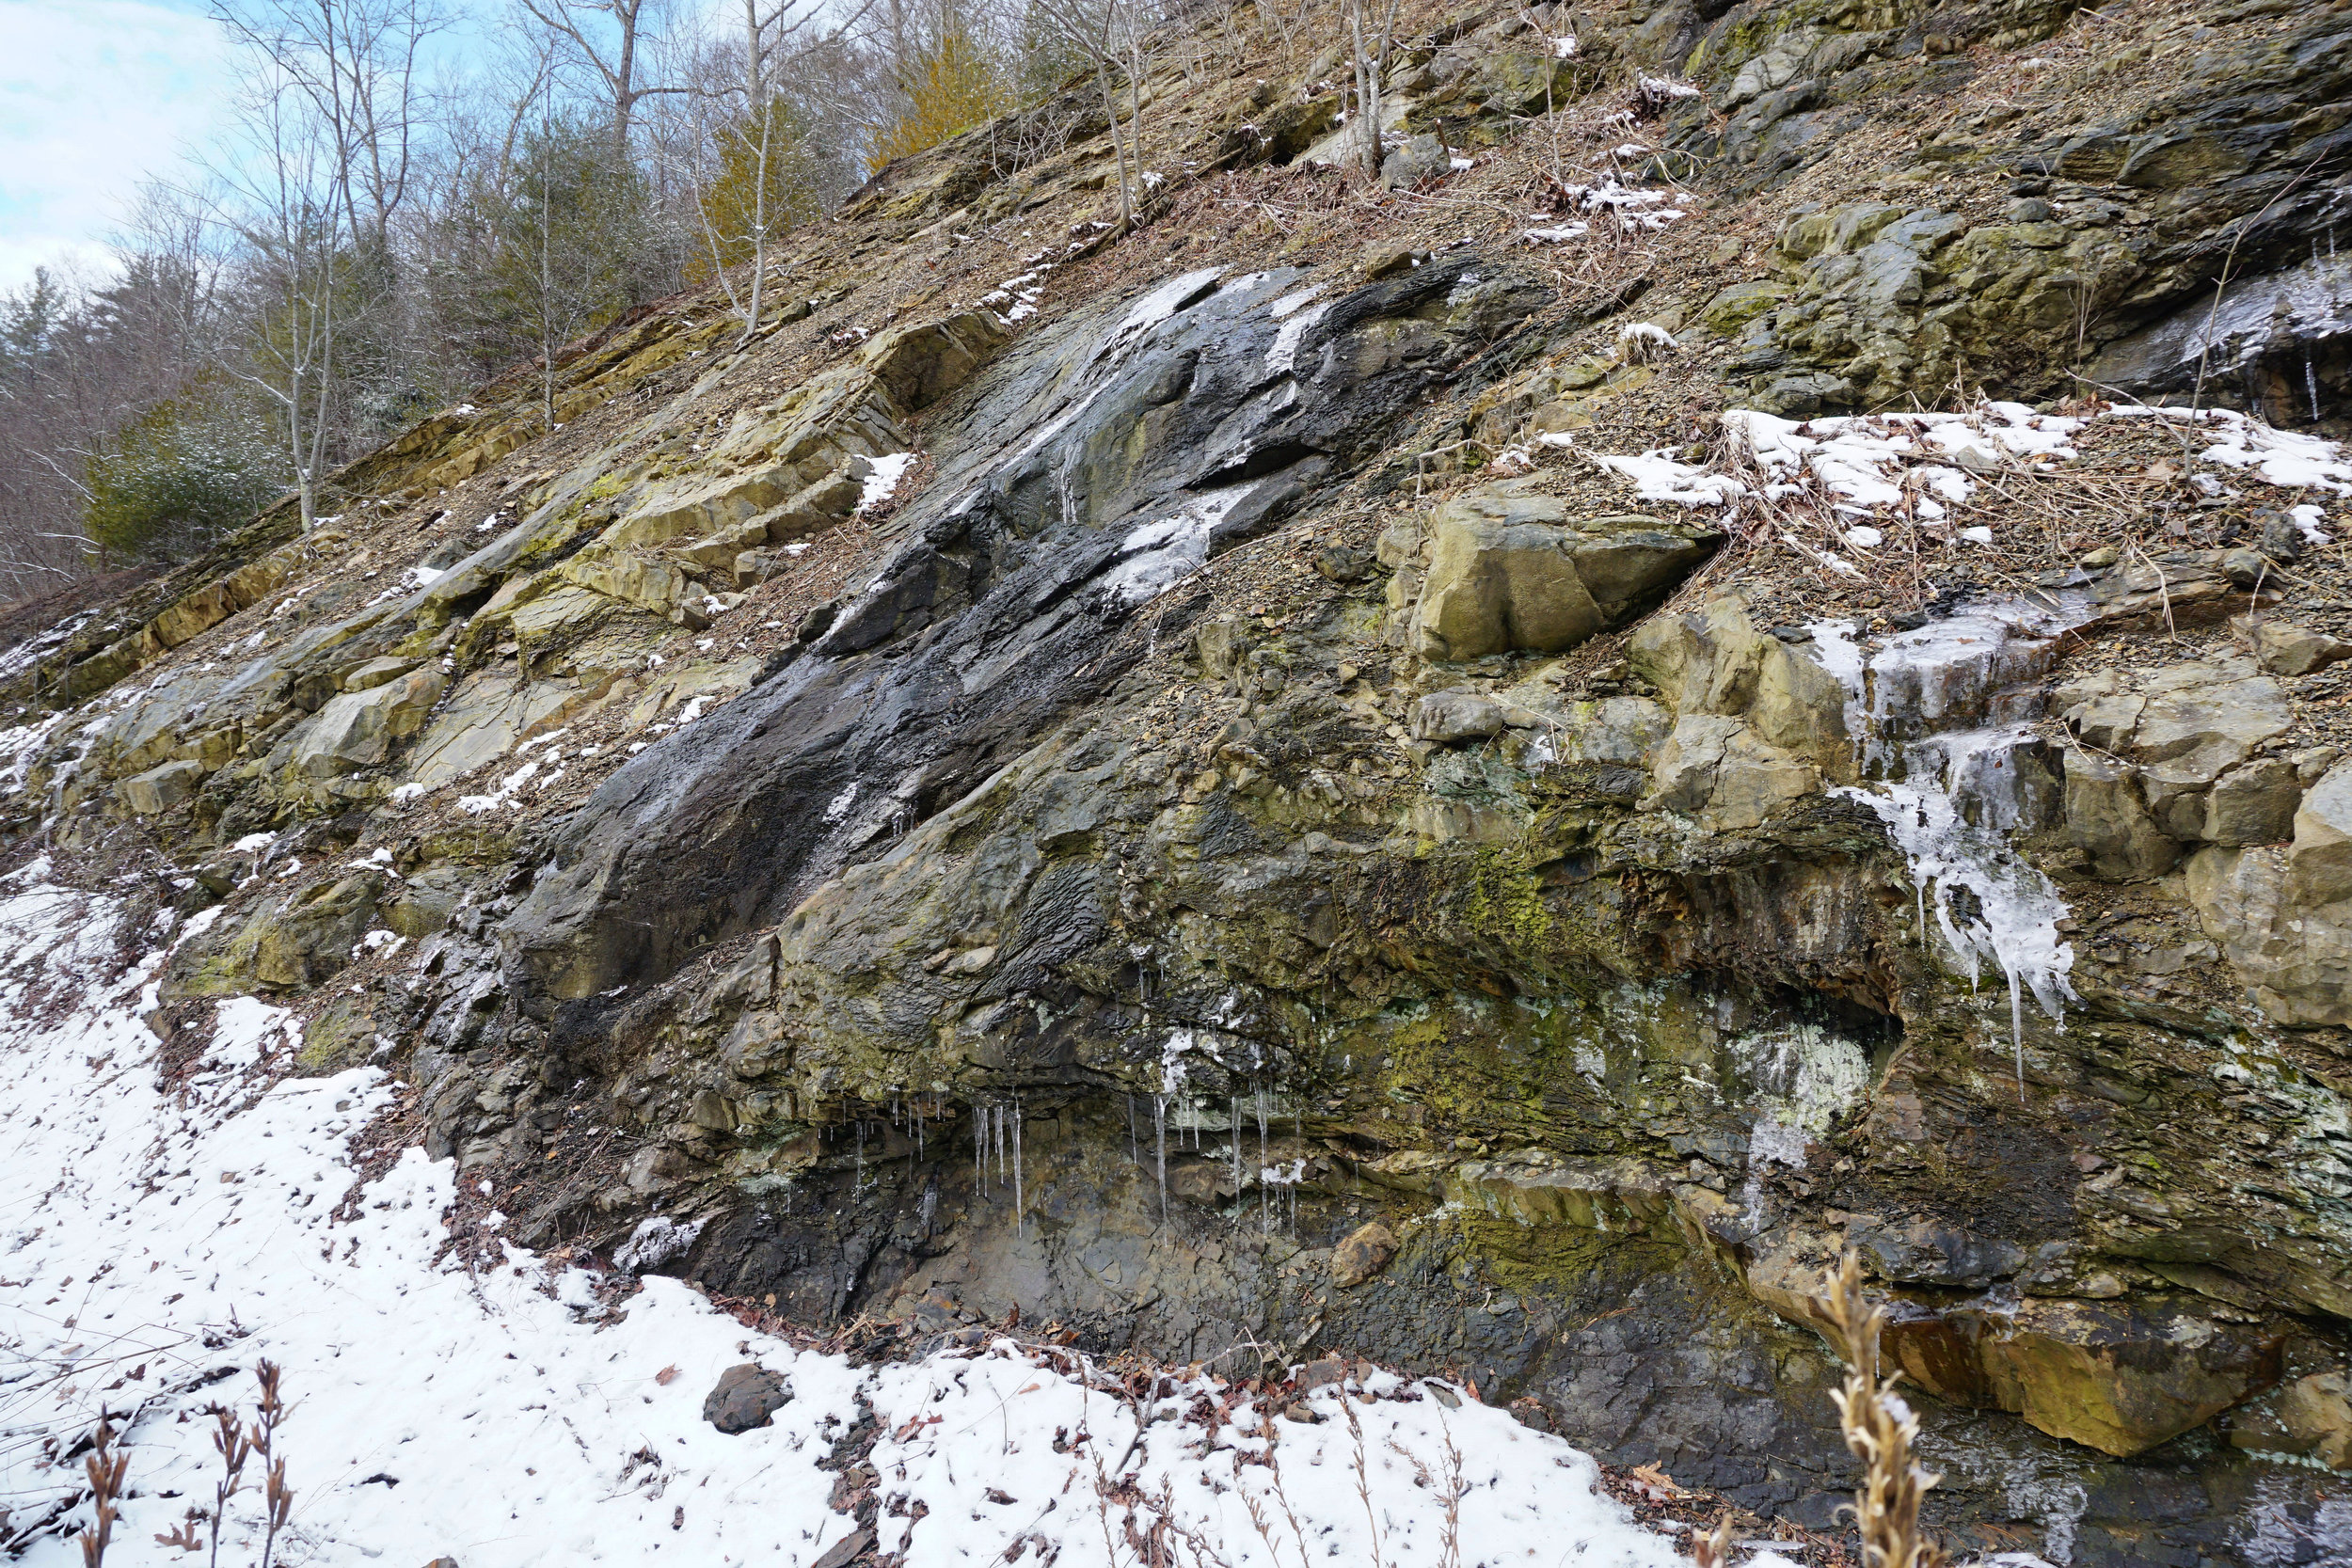 Geological evidence of the underwater landslide within the Hampton Formation.